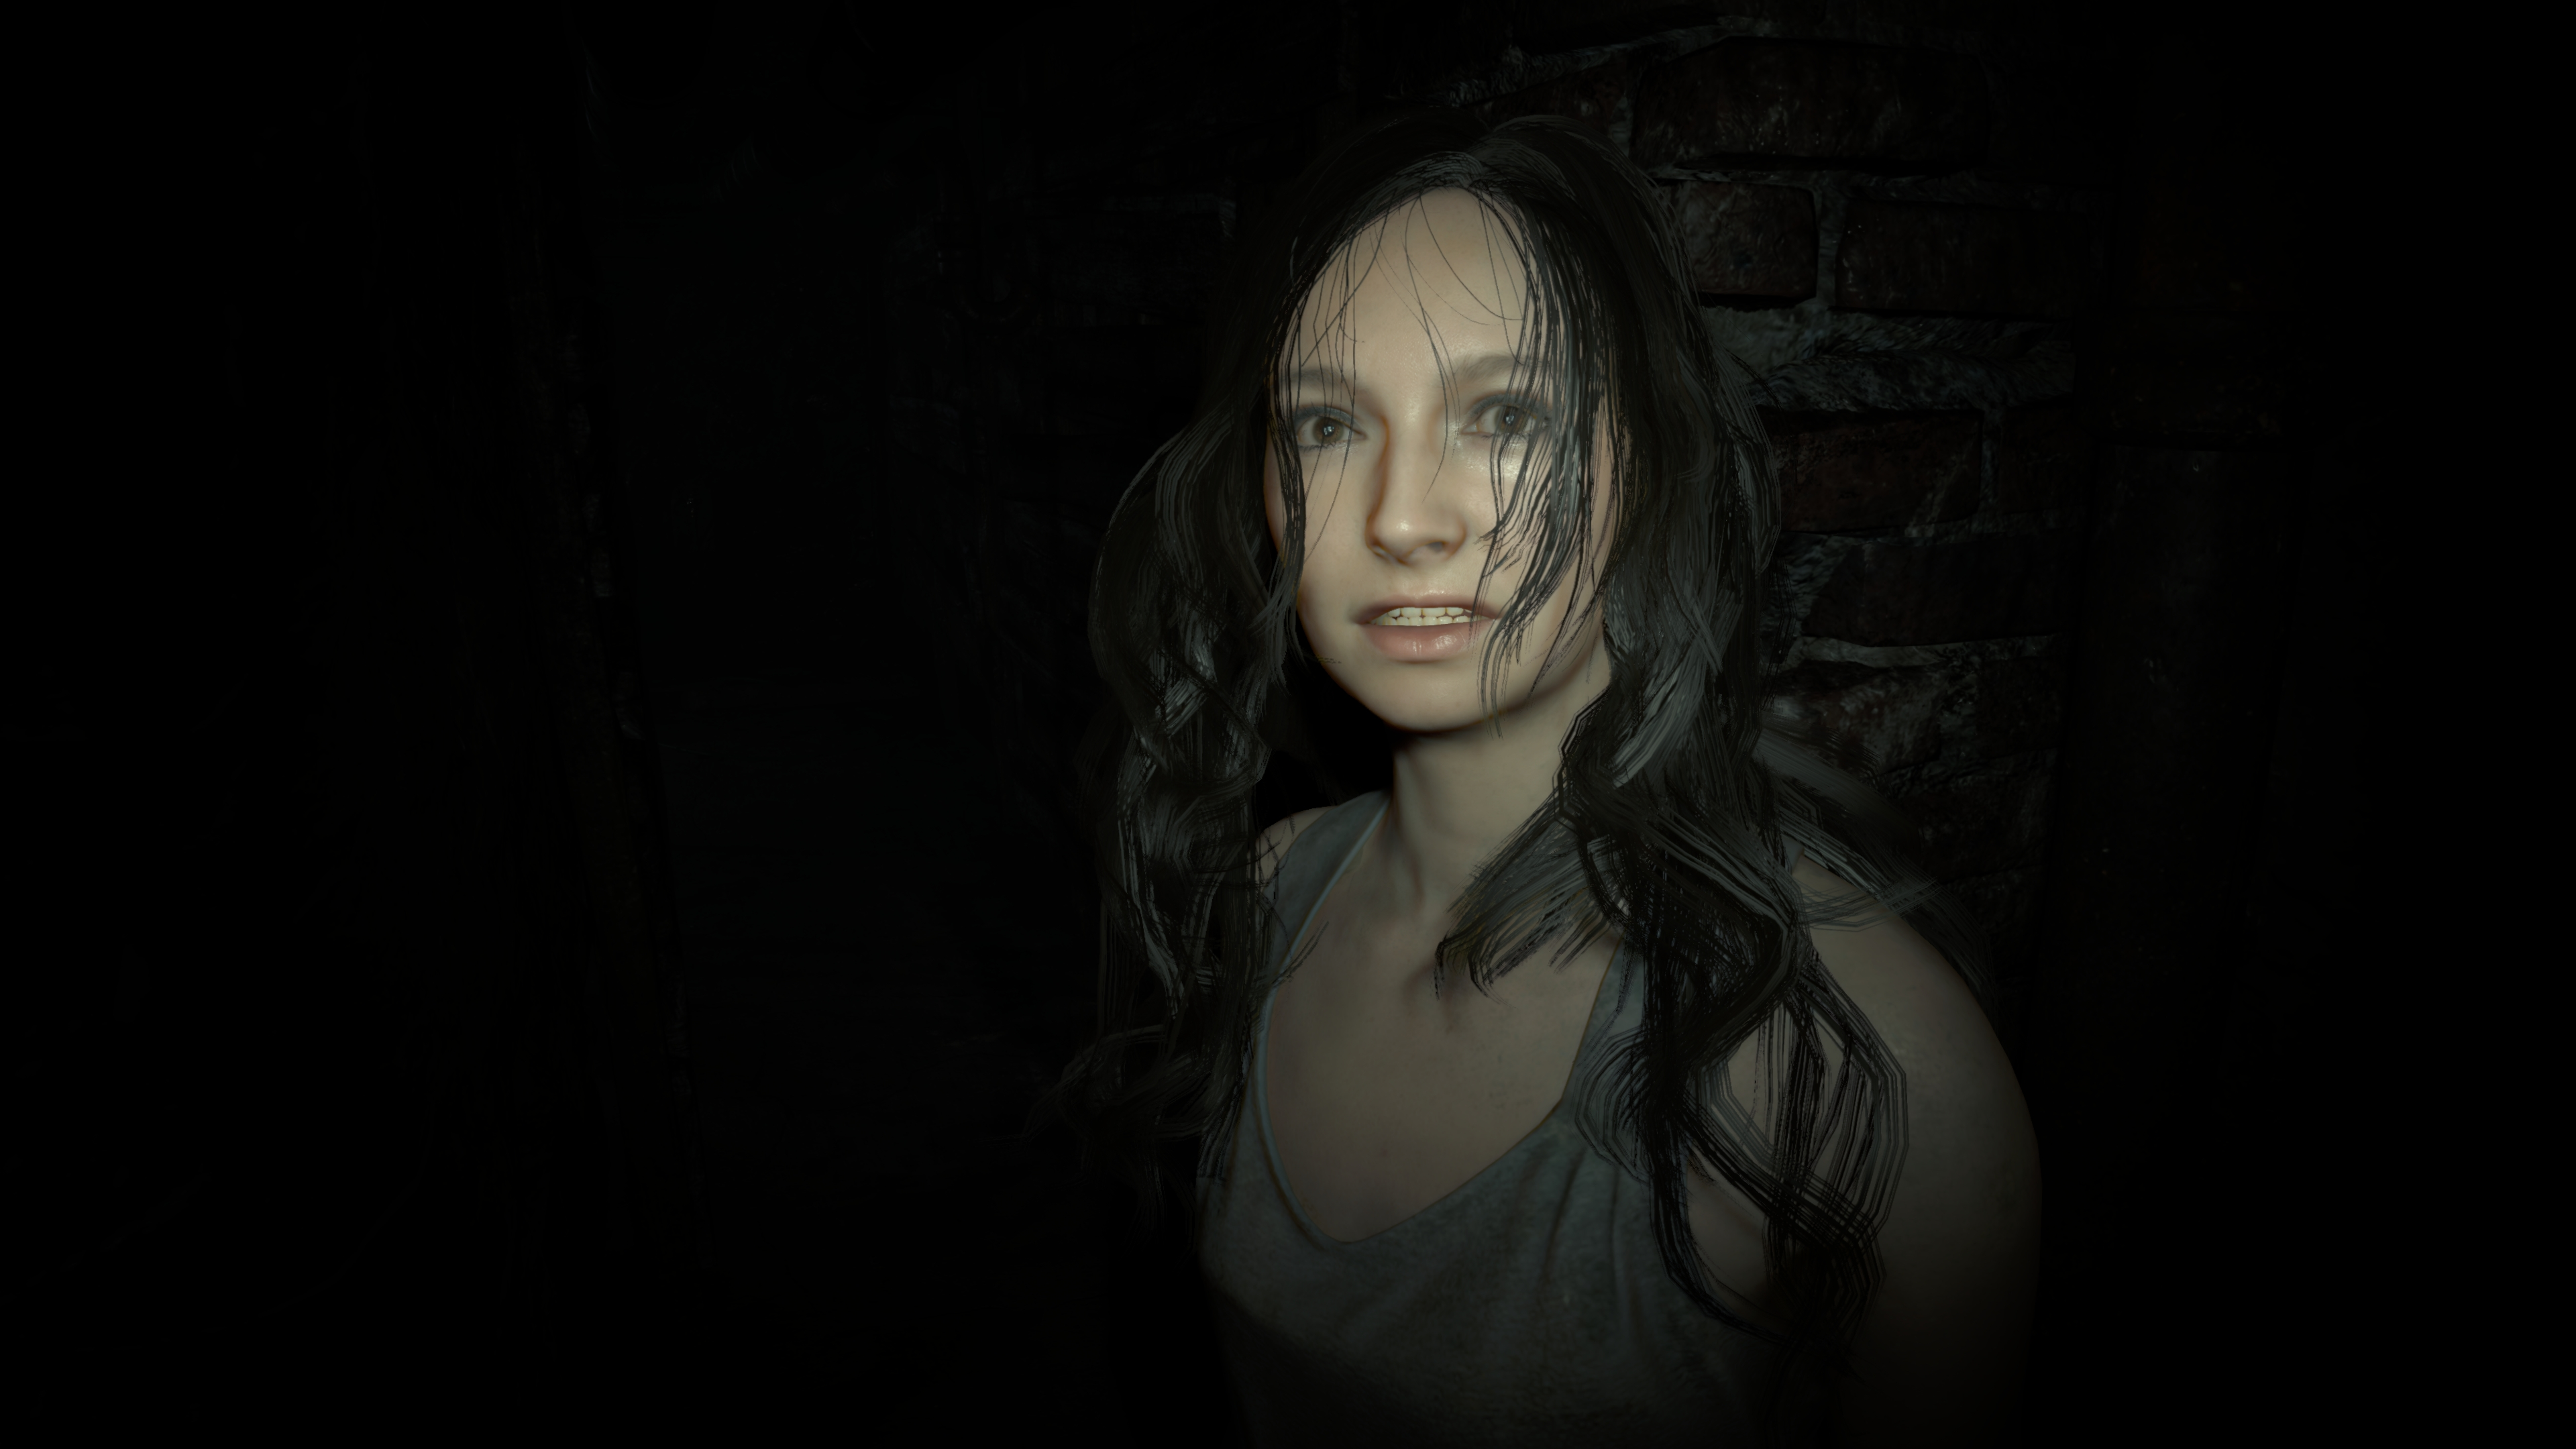 Resident Evil 7 Hd Wallpaper Posted By Ethan Peltier